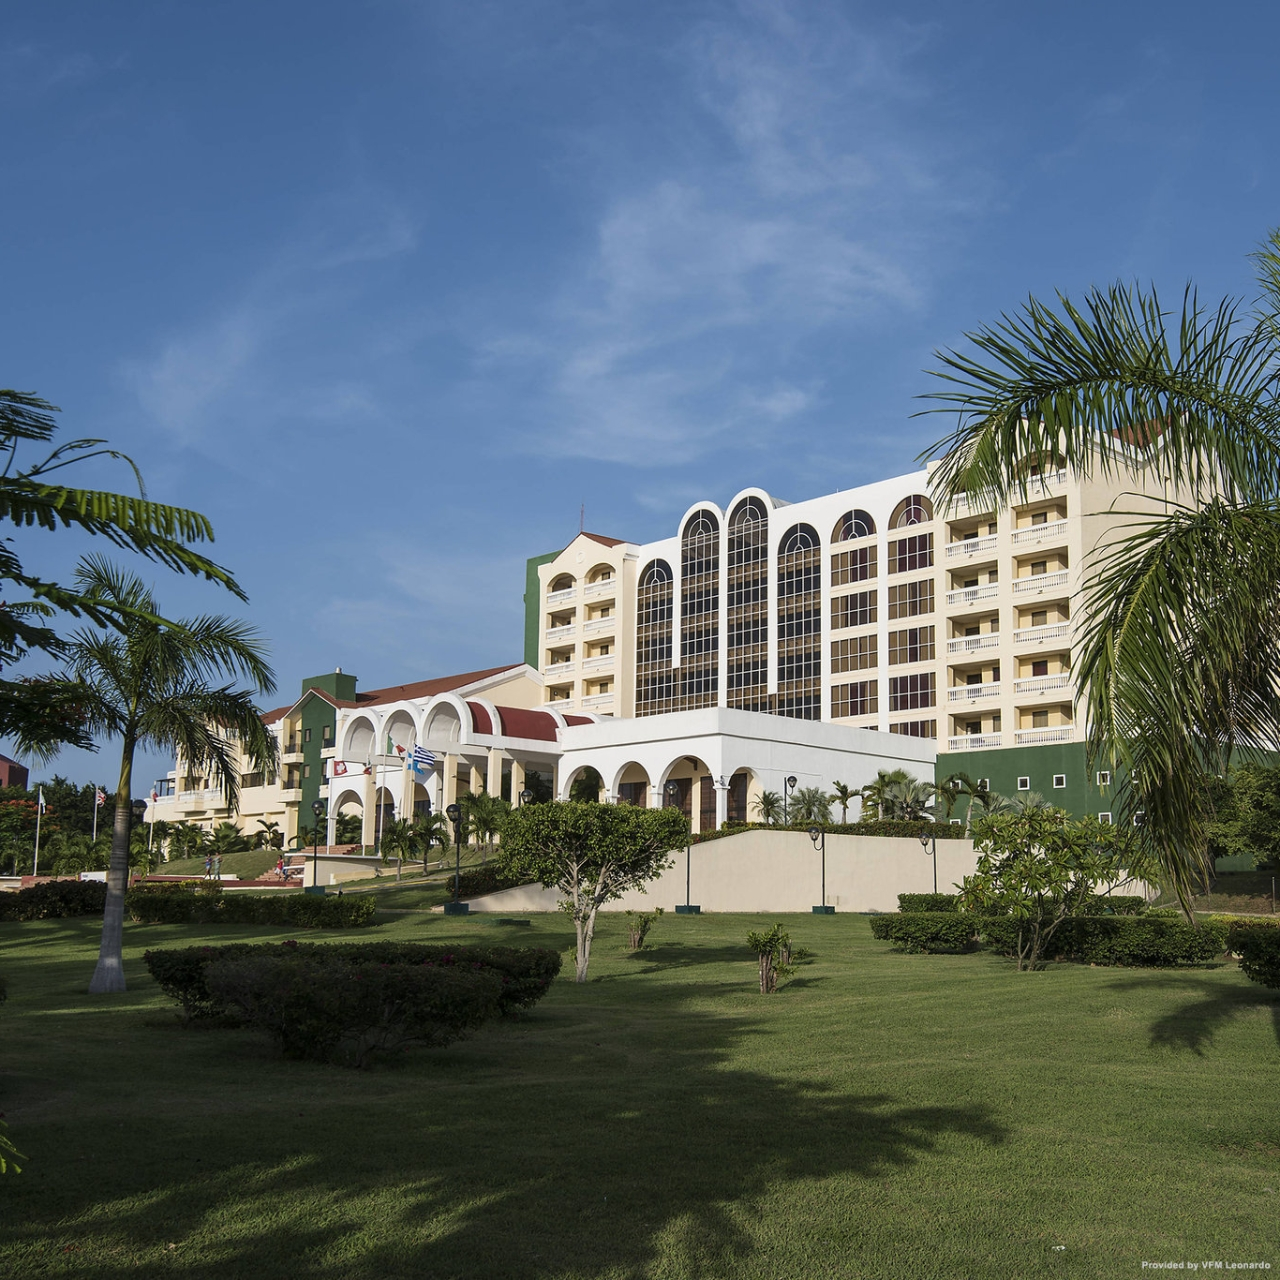 Hotel Four Points By Sheraton Havana Cuba At Hrs With Free Services